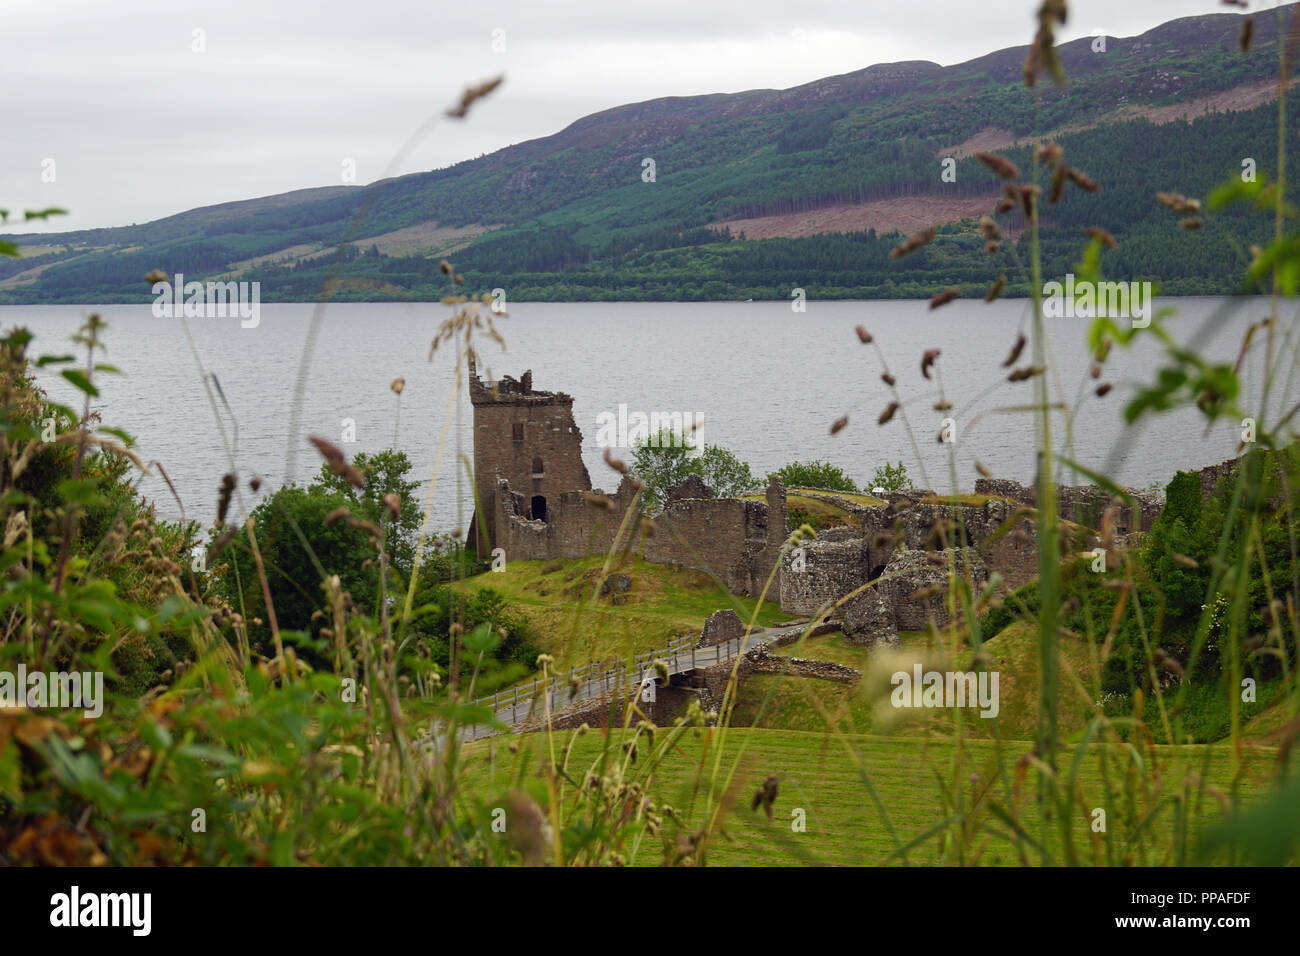 Urquhart Castle is a ruined castle on Loch Ness. The nearest town is Drumnadrochit, which is about 2.7 km away. - Stock Image